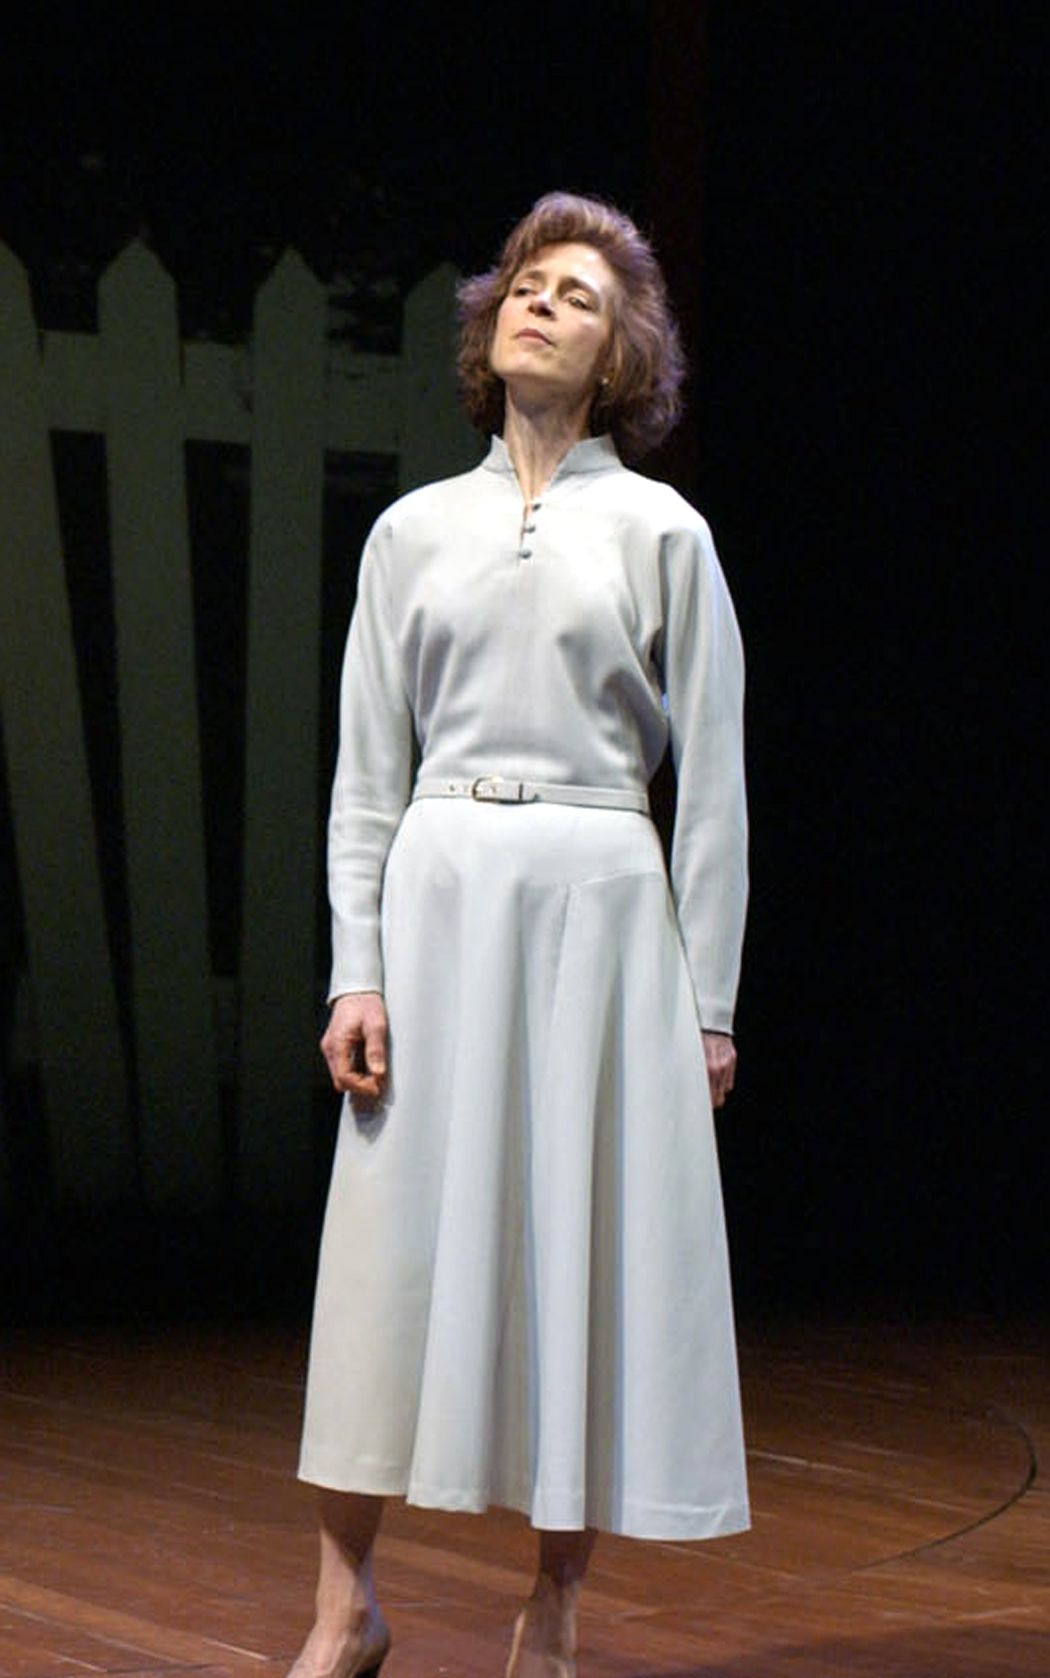 """Martha Lavey in the Steppenwolf Theatre production of """"I Never Sang for My Father."""" 